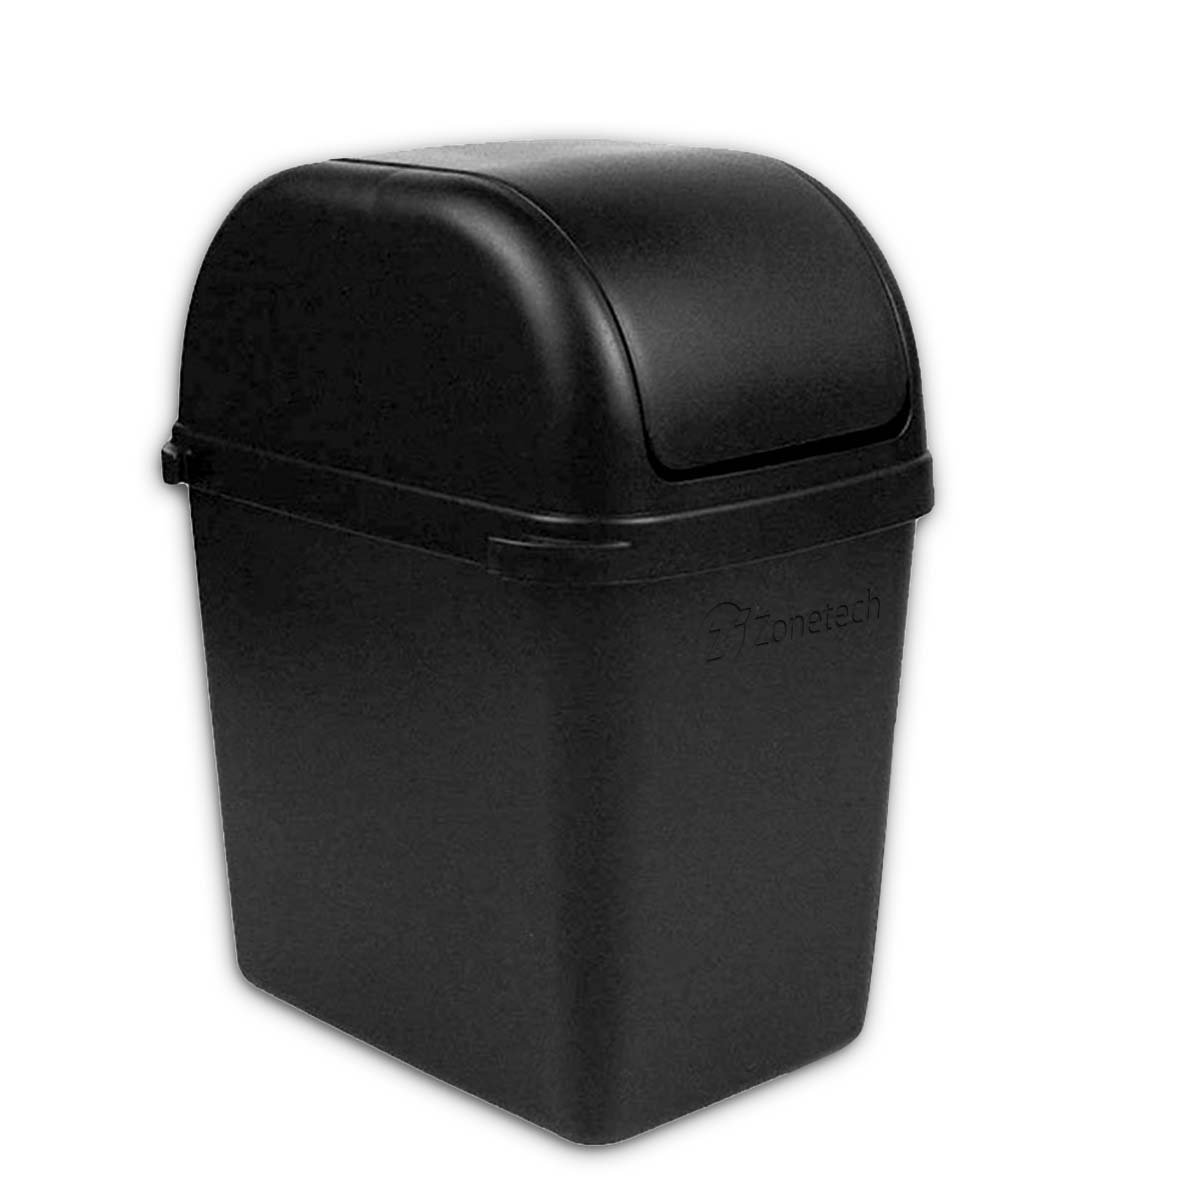 Zone Tech Portable Small Car Garbage Trash Litter Wastebasket Can Latc 3149688